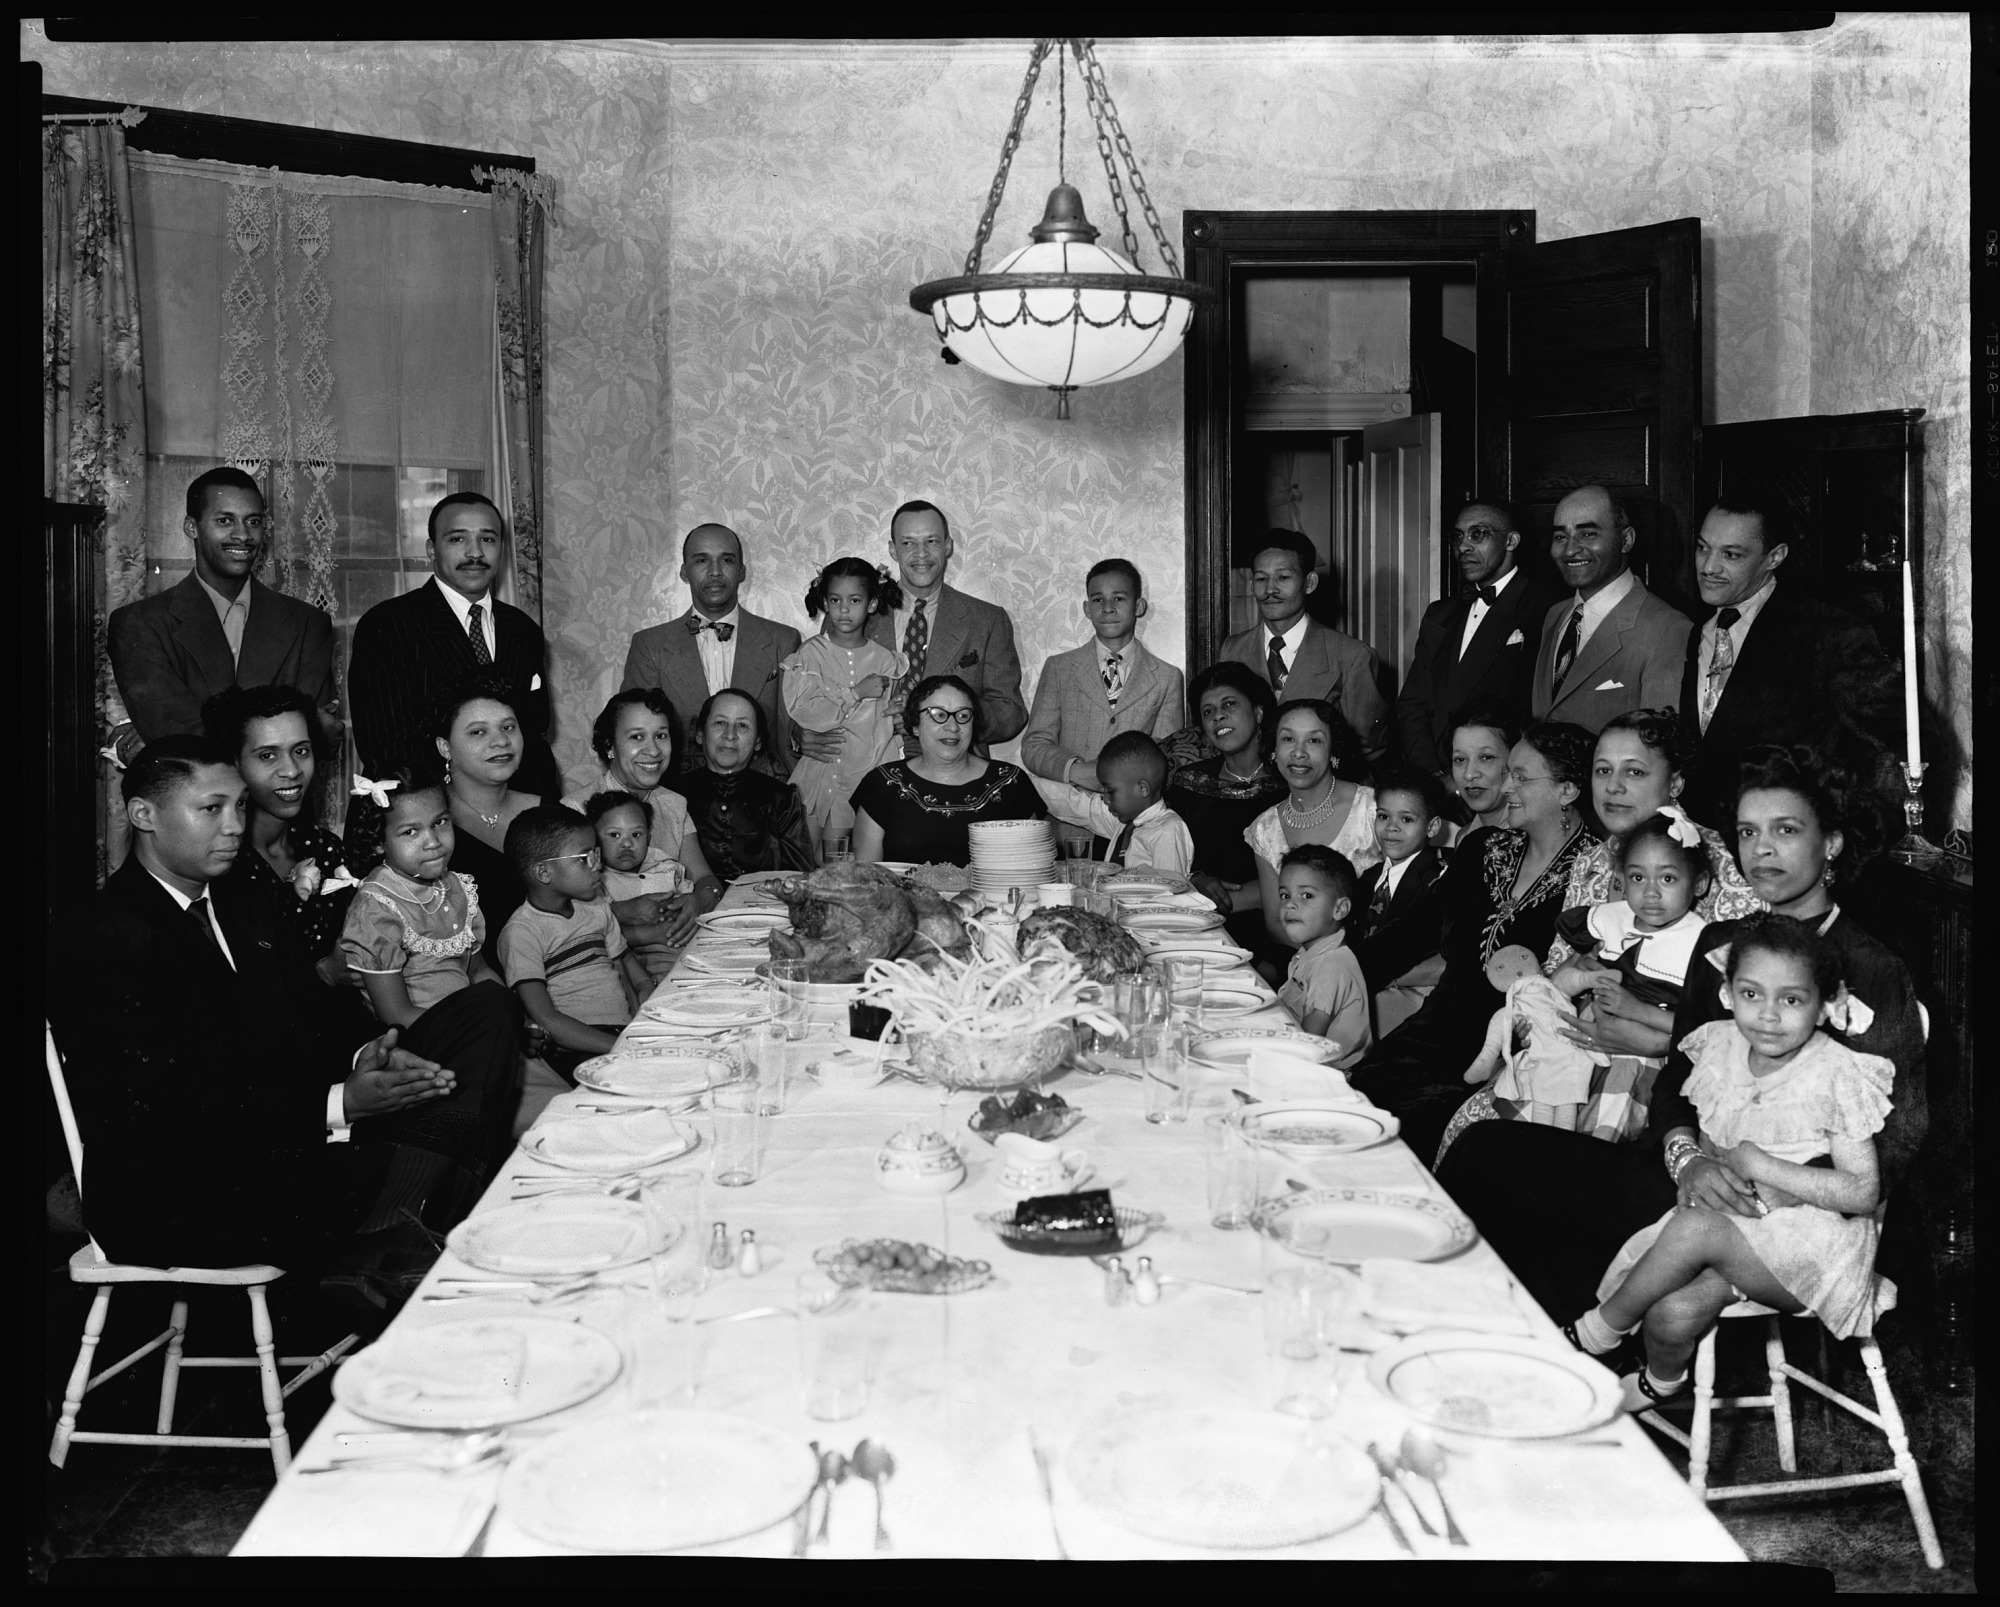 images for Mr. Mercer (?) Conway family dinner, November 23, 1950 : cellulose acetate photonegative